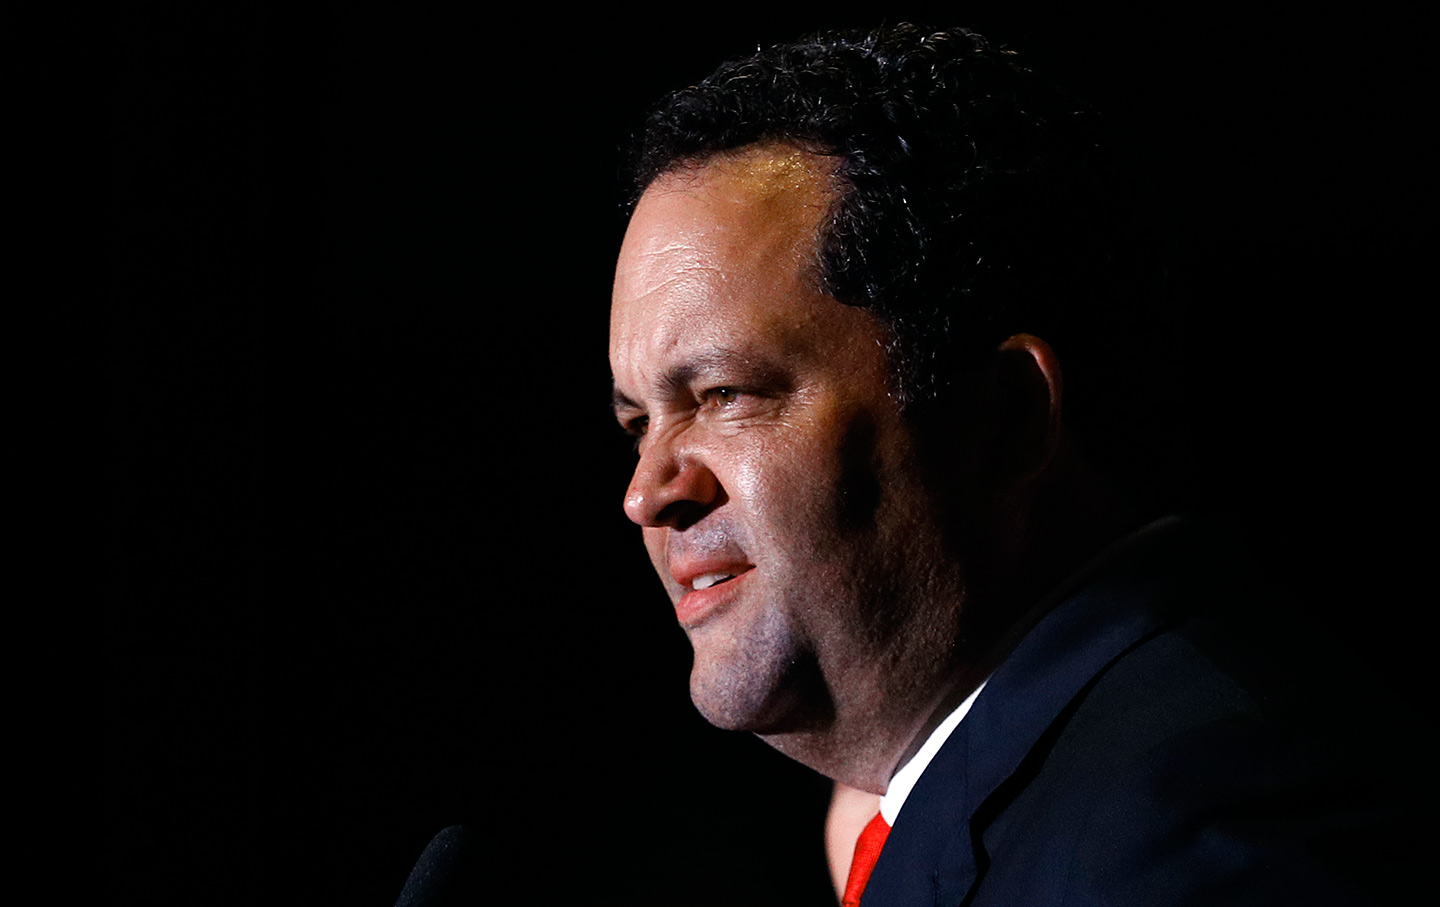 VIDEO Ben Jealous Makes the Case for Immediate Democracy Reform